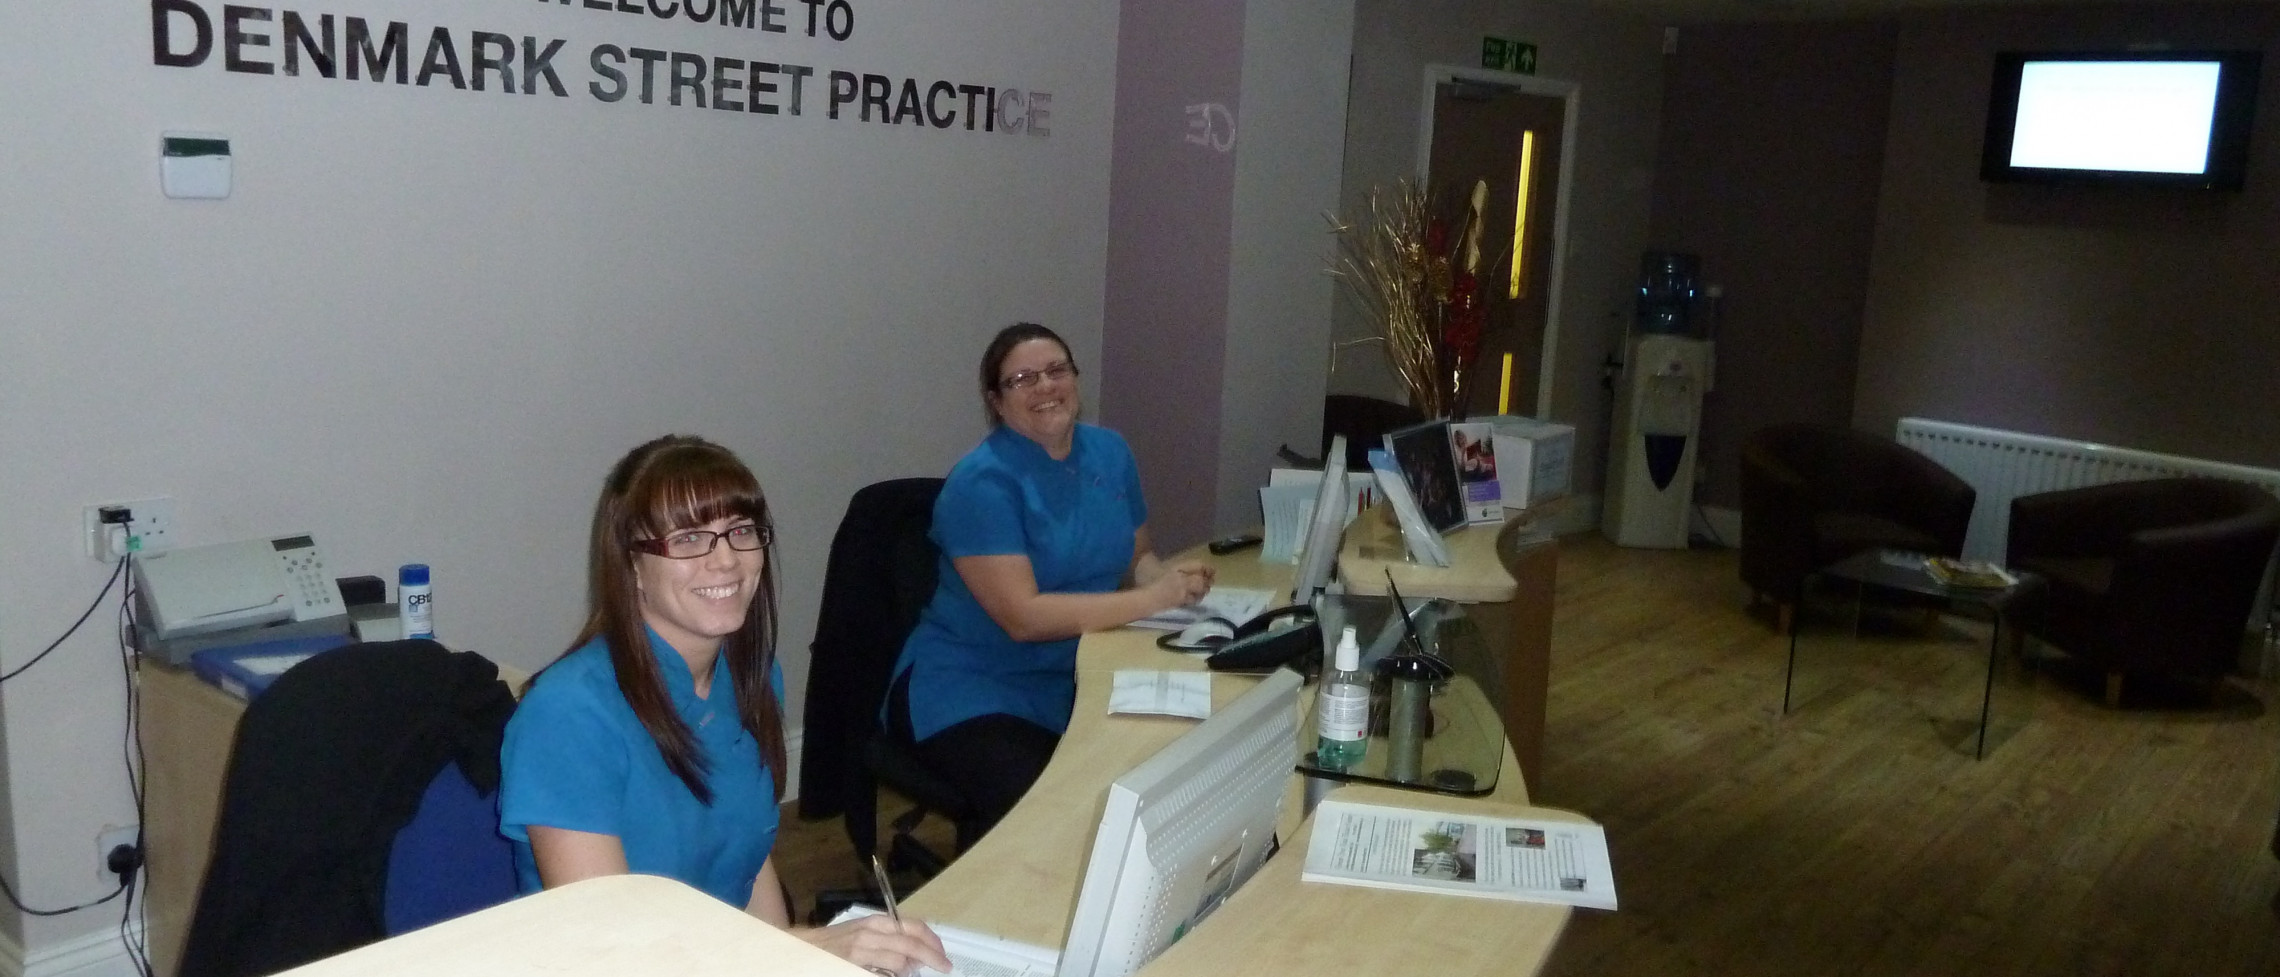 Denmark Street Dental Practice Ltd